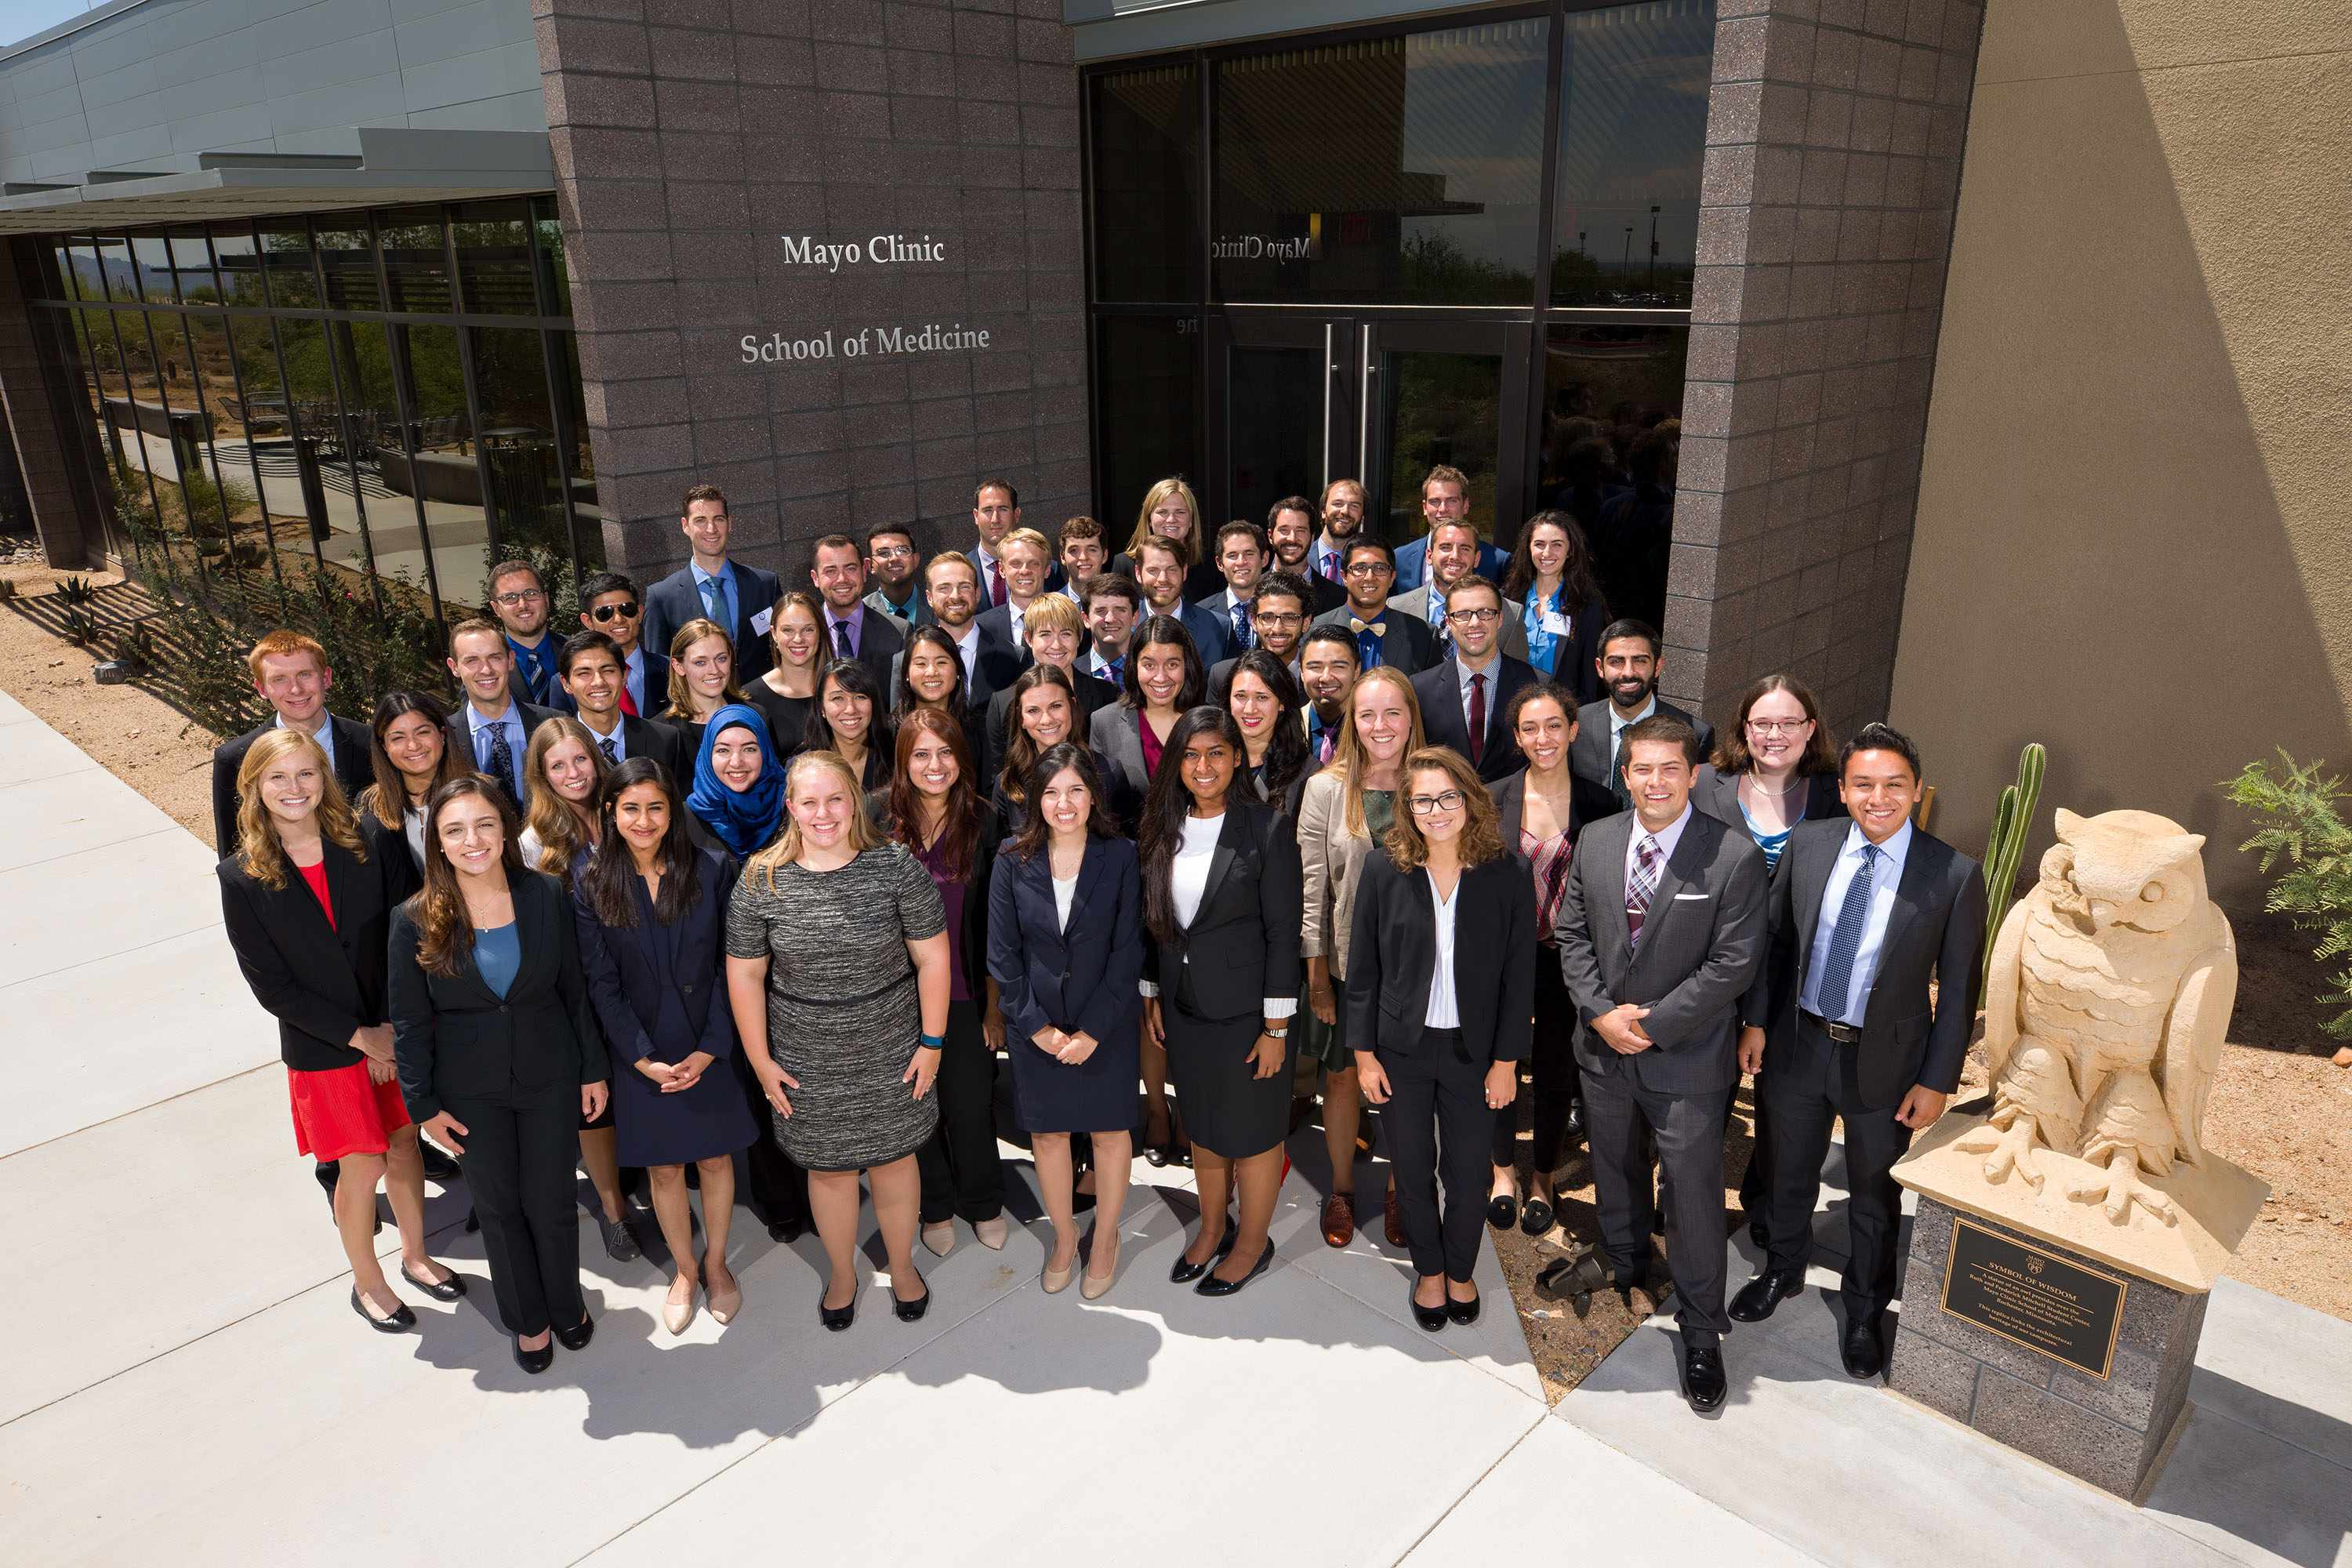 mayo clinic school of medicine gives medical education a